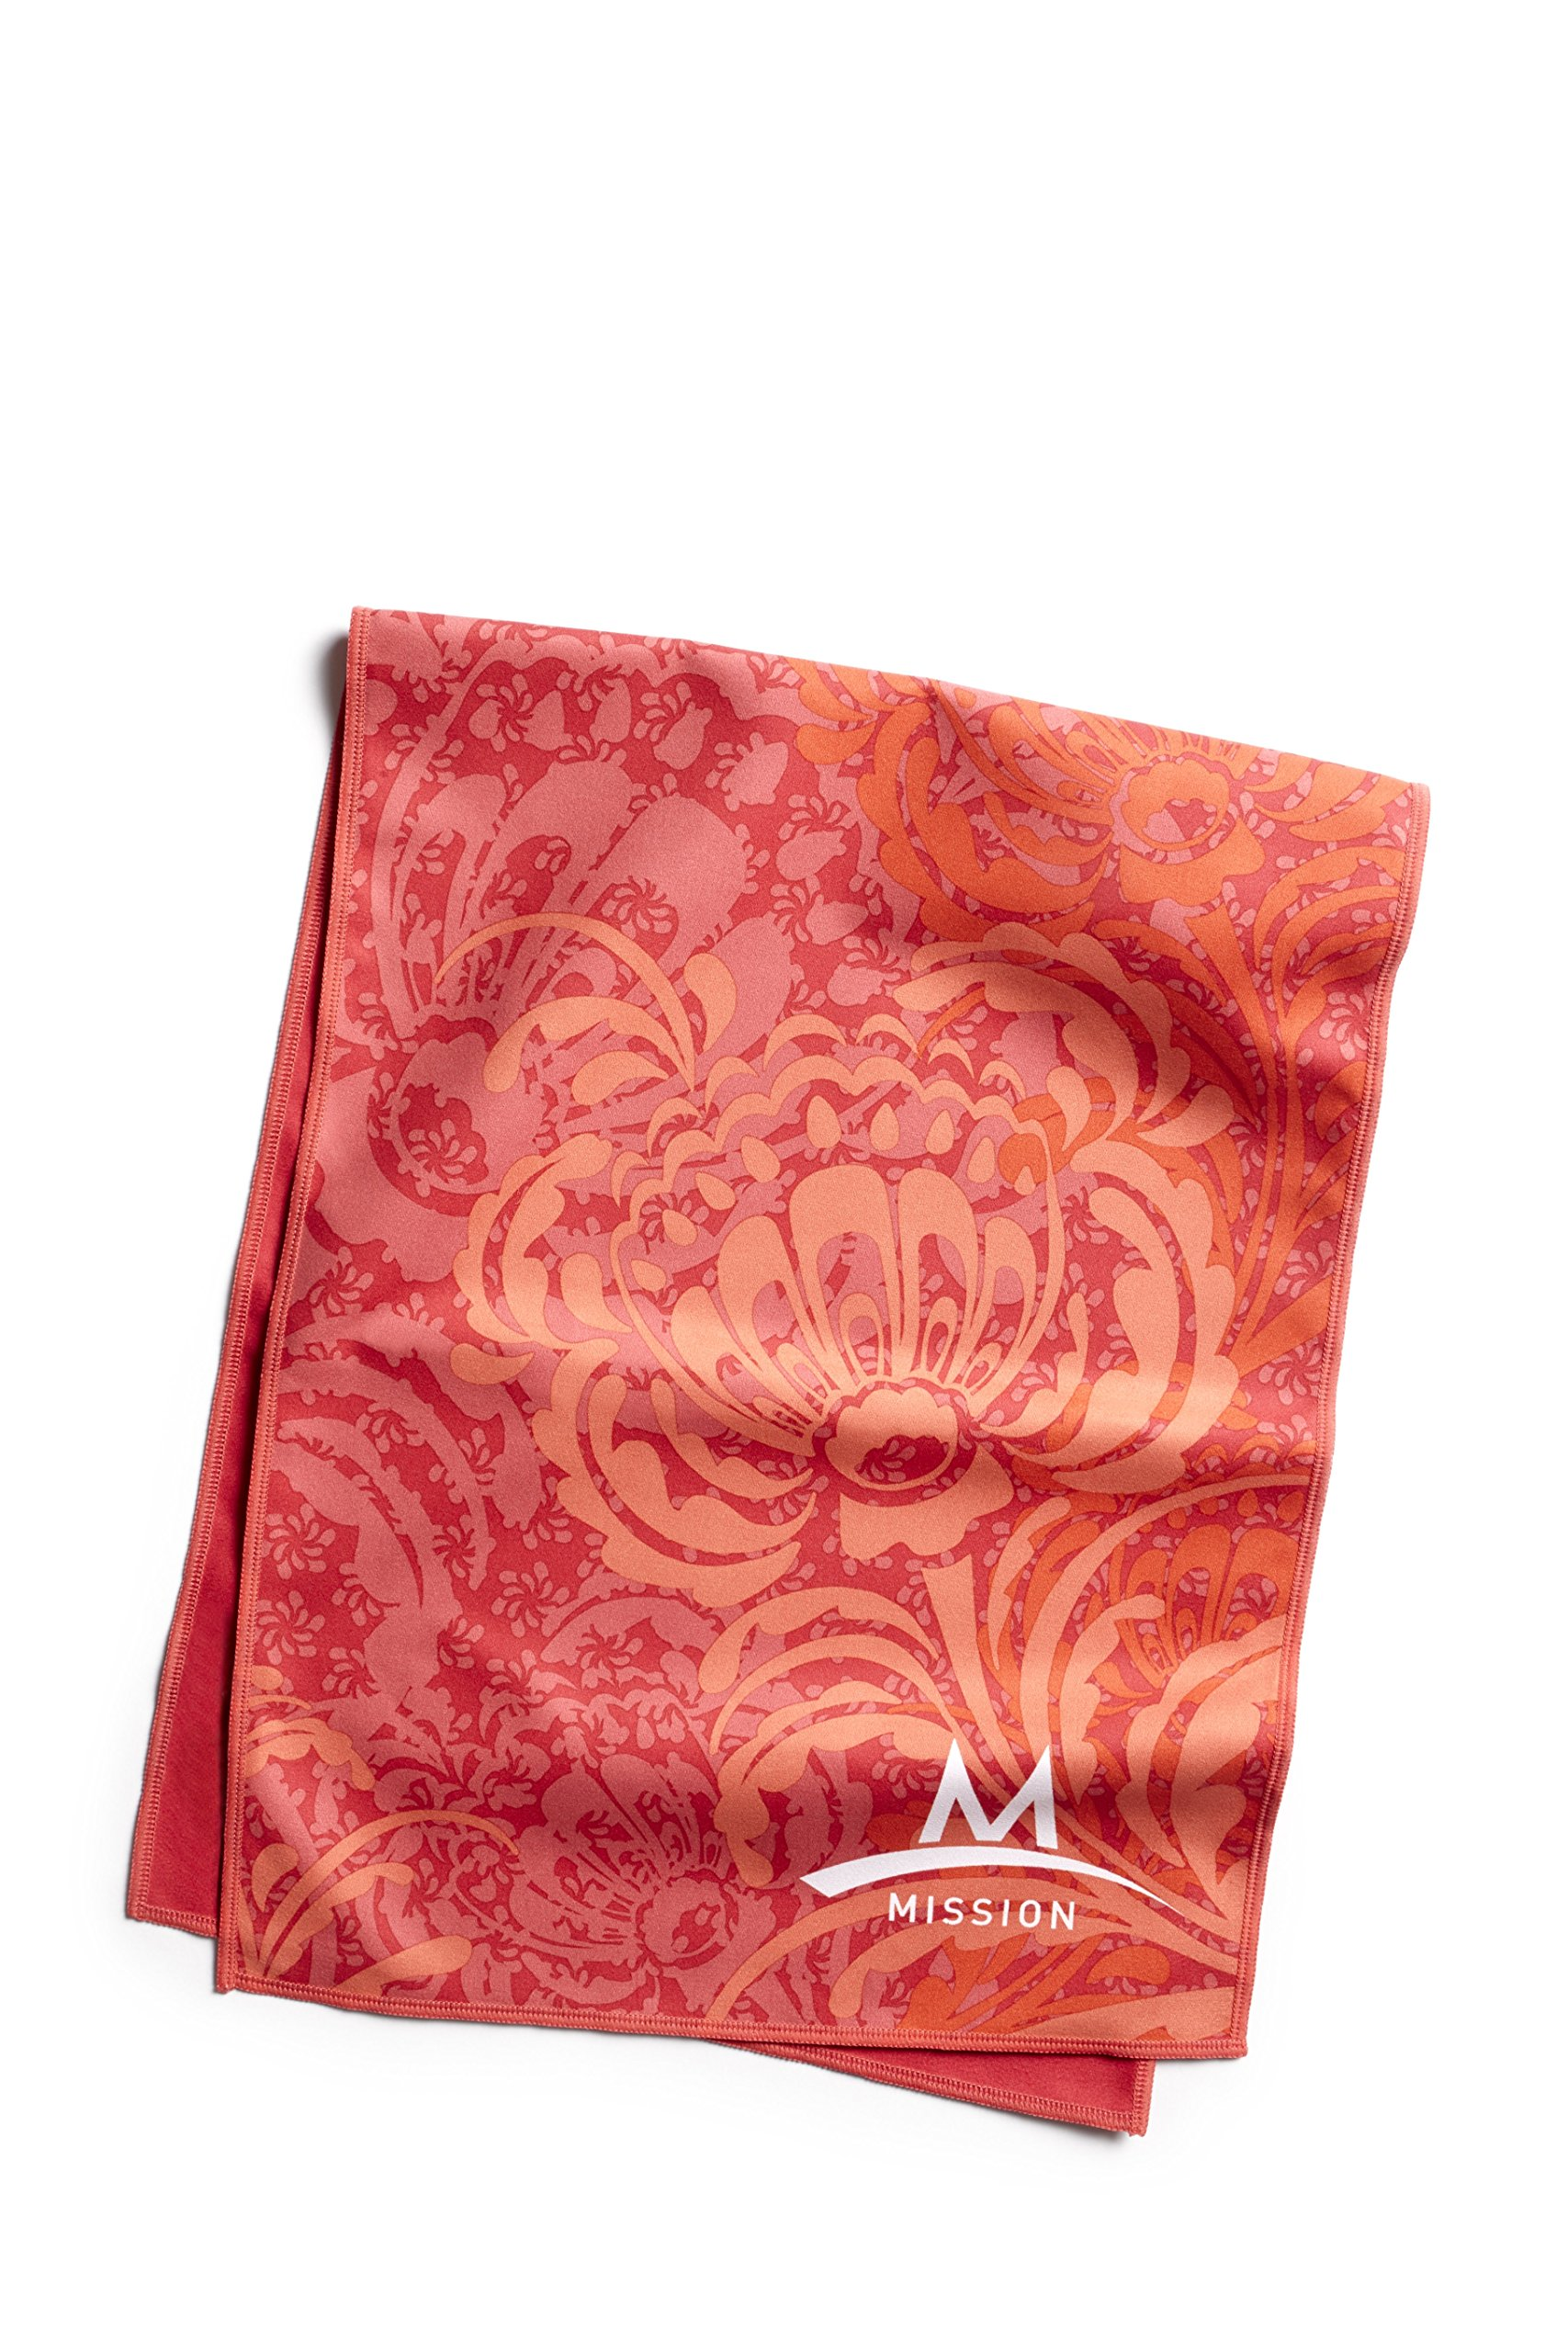 Mission Enduracool Microfiber Cooling Towel, Peony Coral, Large by Mission